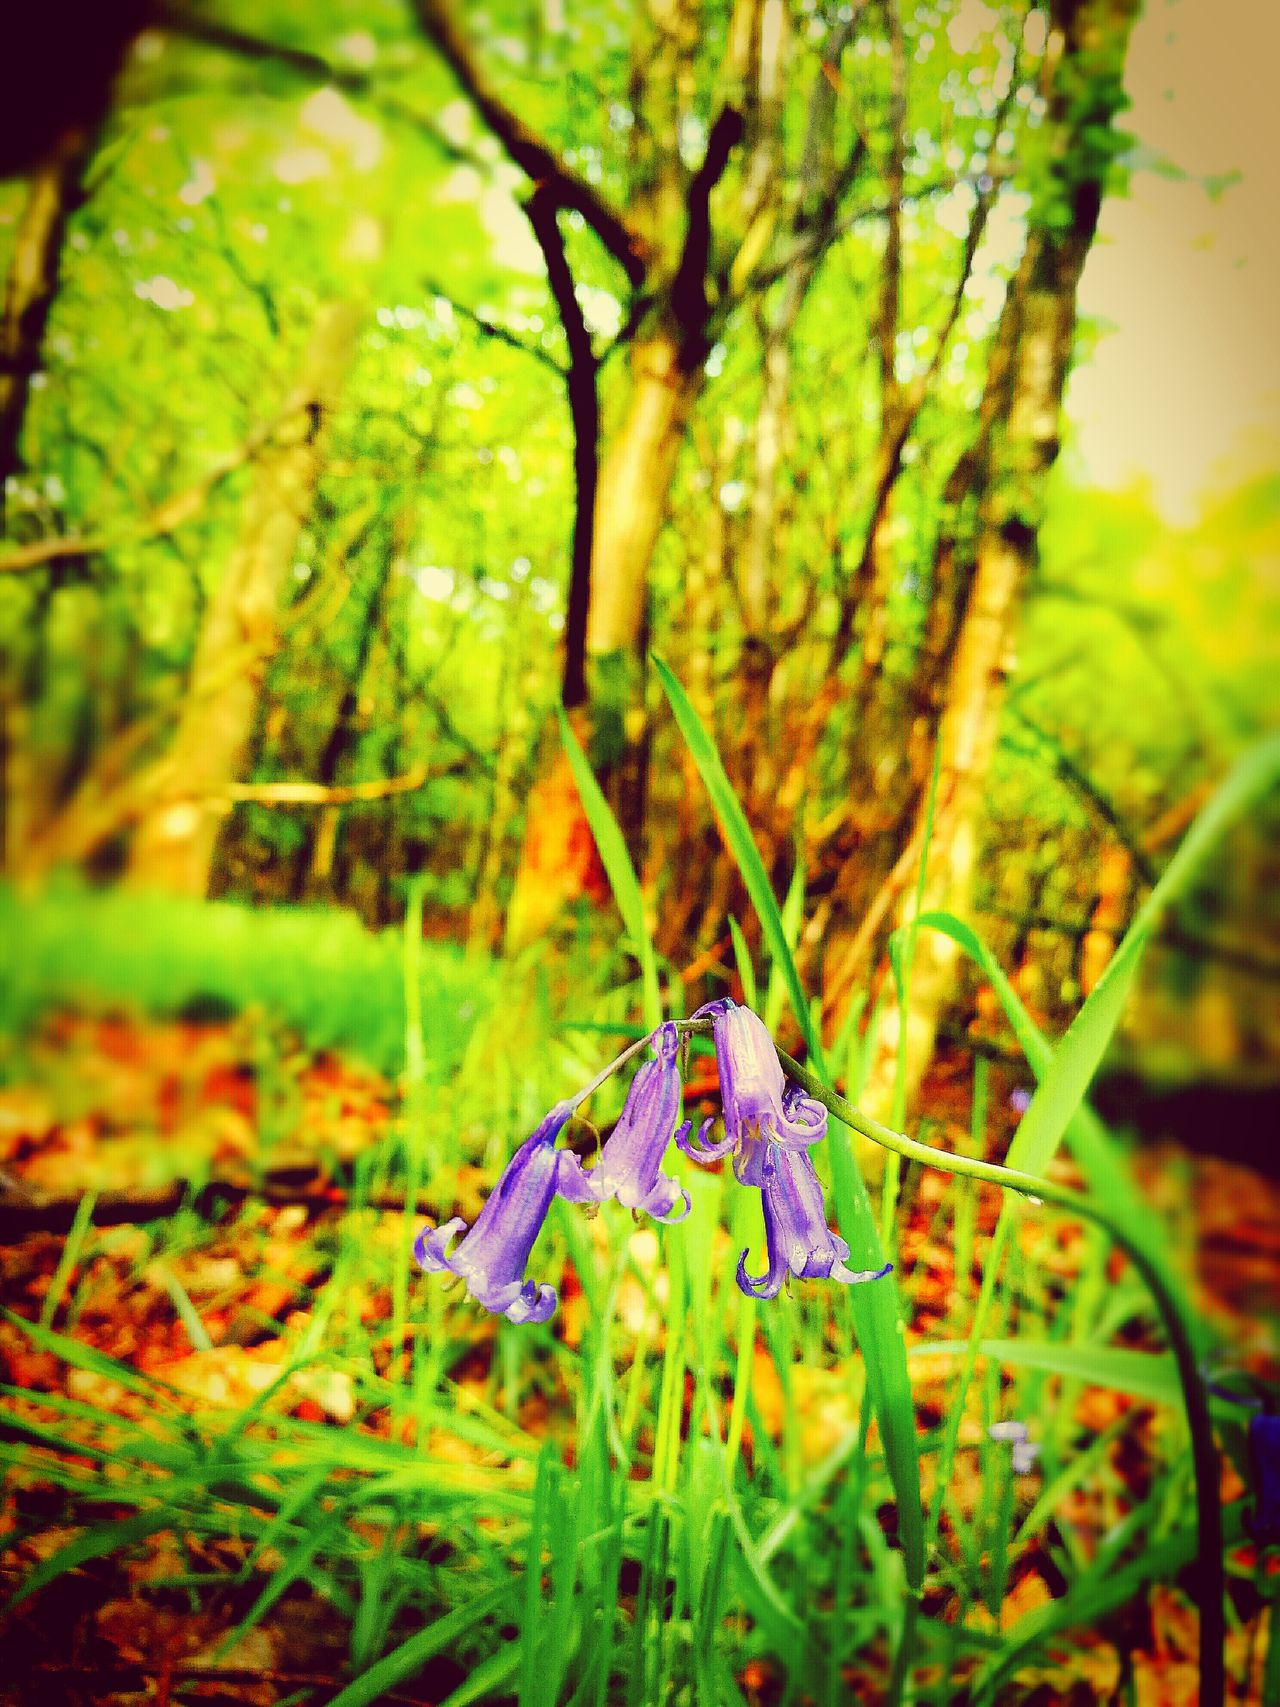 Close-up No People Nature Outdoors Beauty In Nature Fragility Flower Bluebell Wood Growth Plant Focus On Foreground